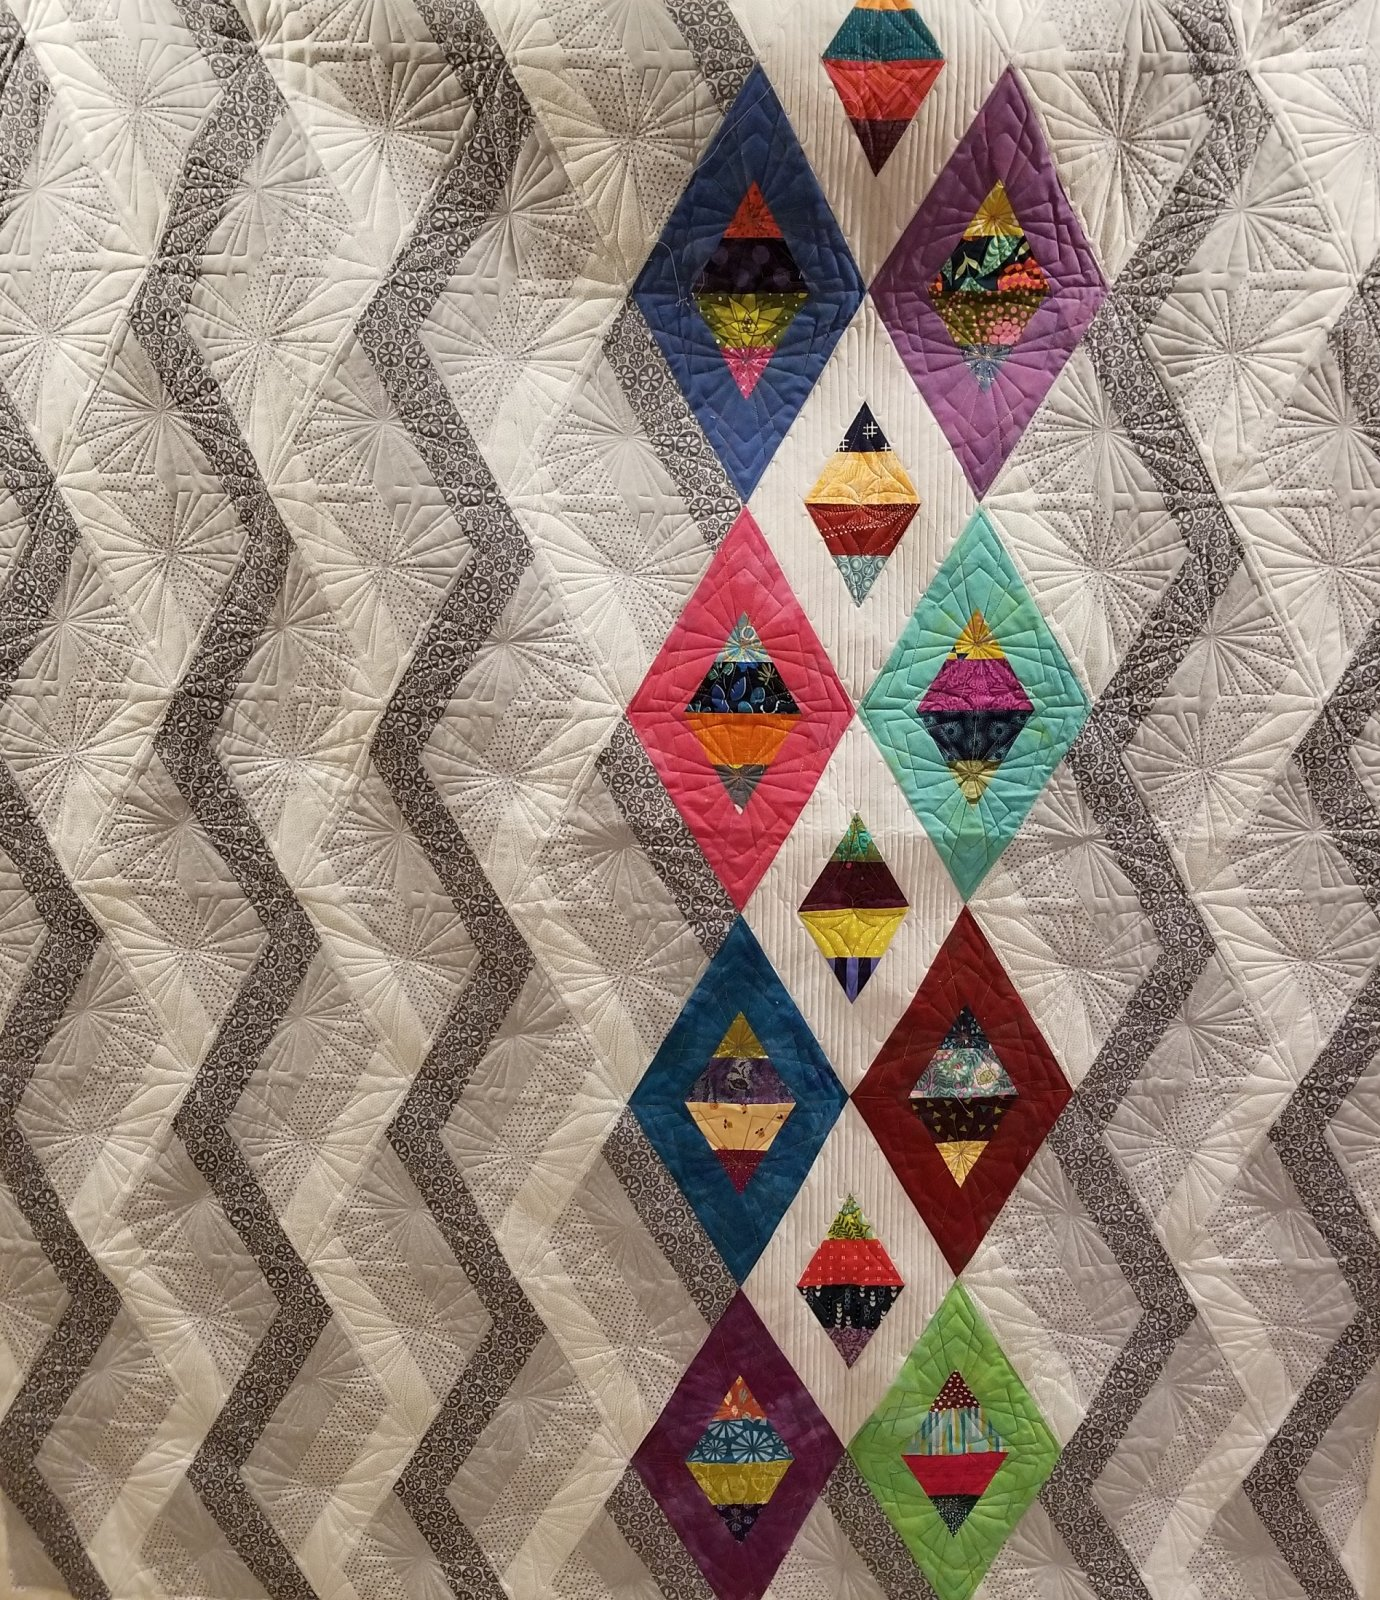 From Cut Loose Press Patterns NEW WOVEN JEWELBOX QUILT QUILTING PATTERN